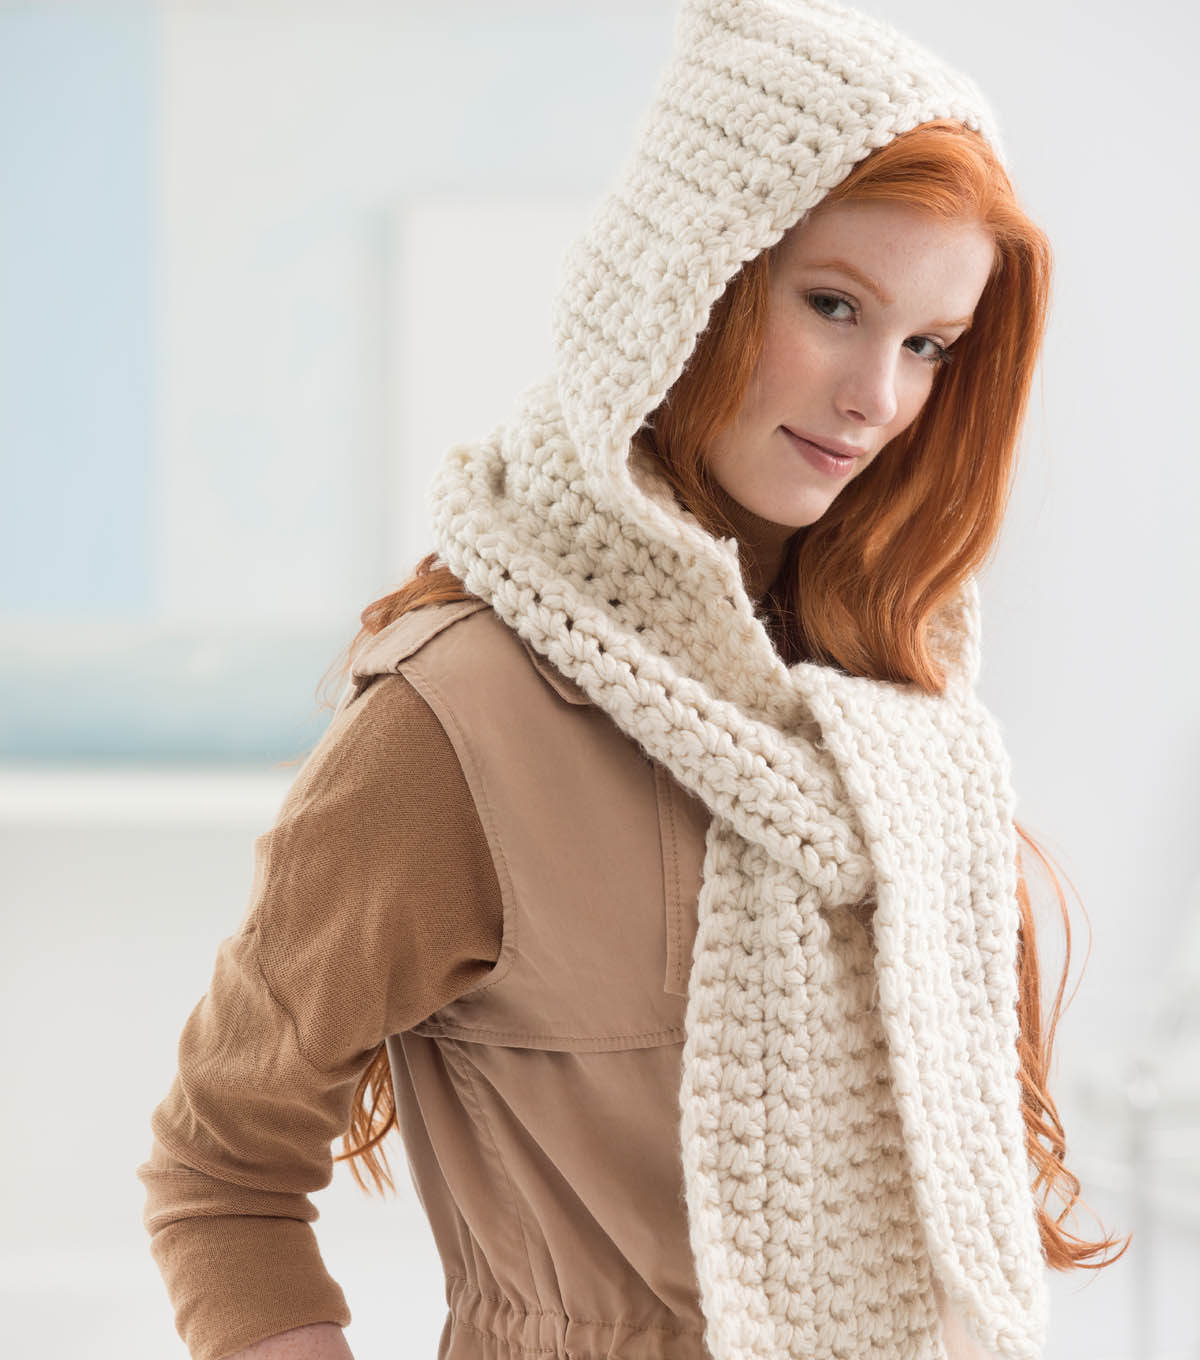 Best Of How to Crochet A Scarf for Beginners Step by Step Slowly Crochet Hooded Scarf Of Wonderful 48 Images Crochet Hooded Scarf